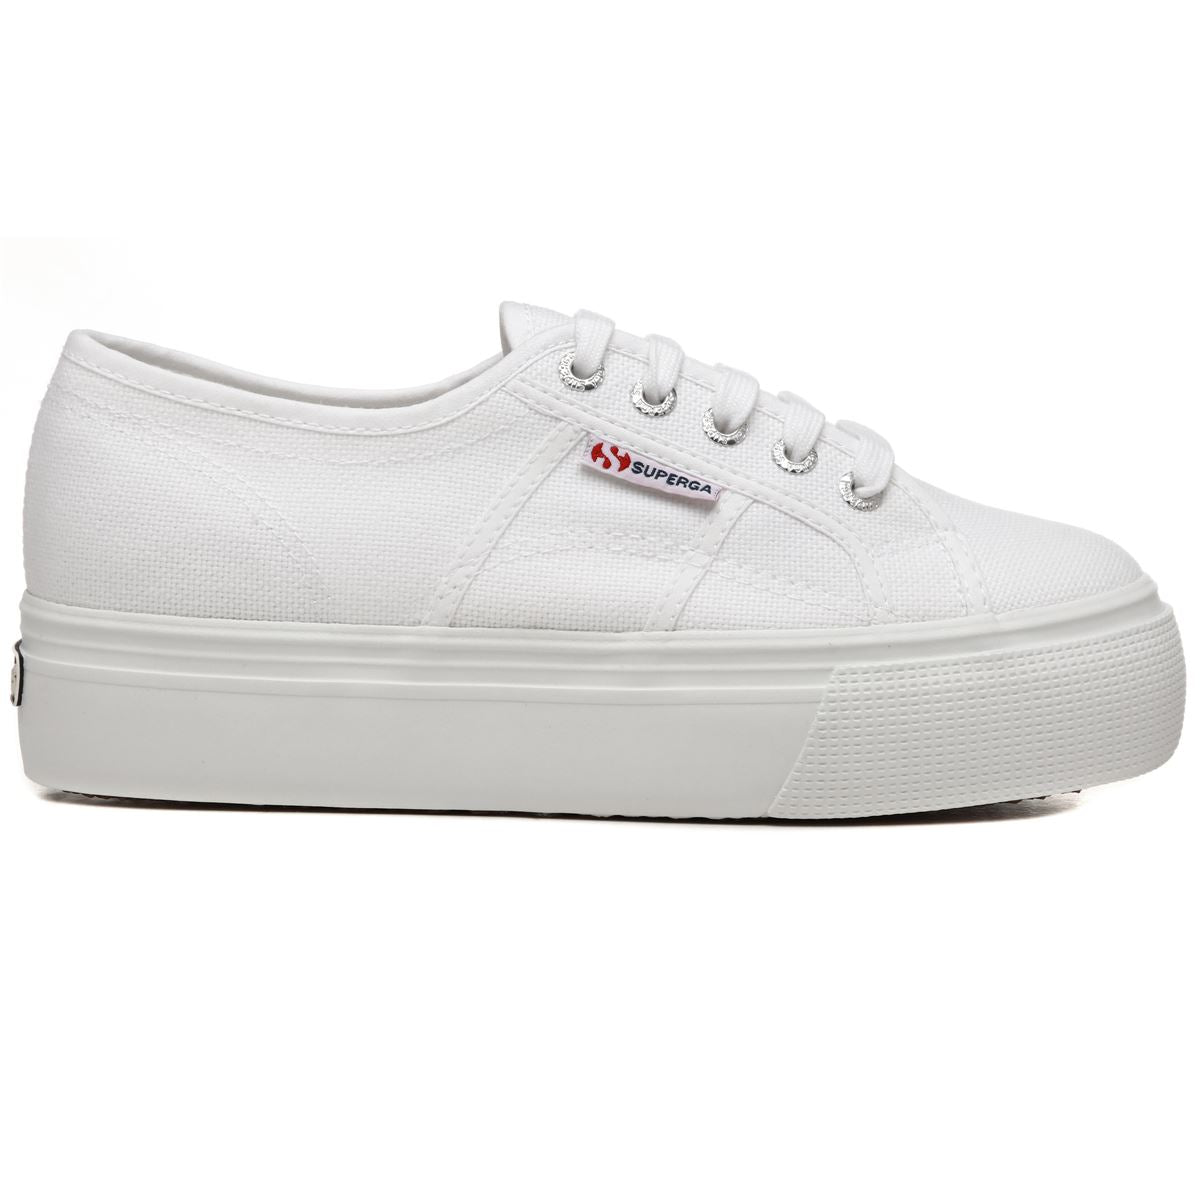 2790-ACOTW LINEA UP AND DOWN -WHITE